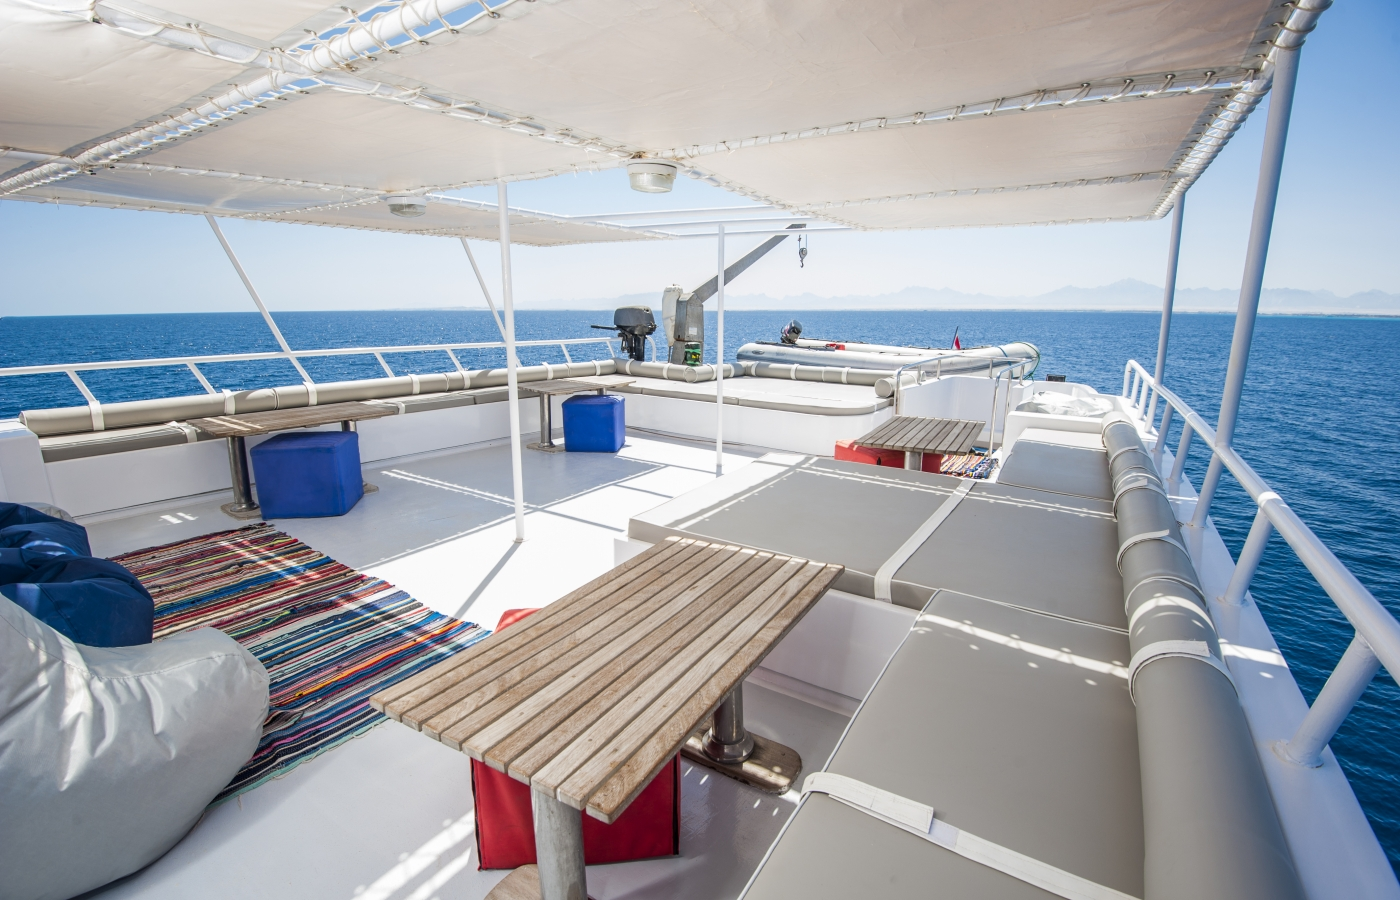 Charter boat in the Red Sea Egypt